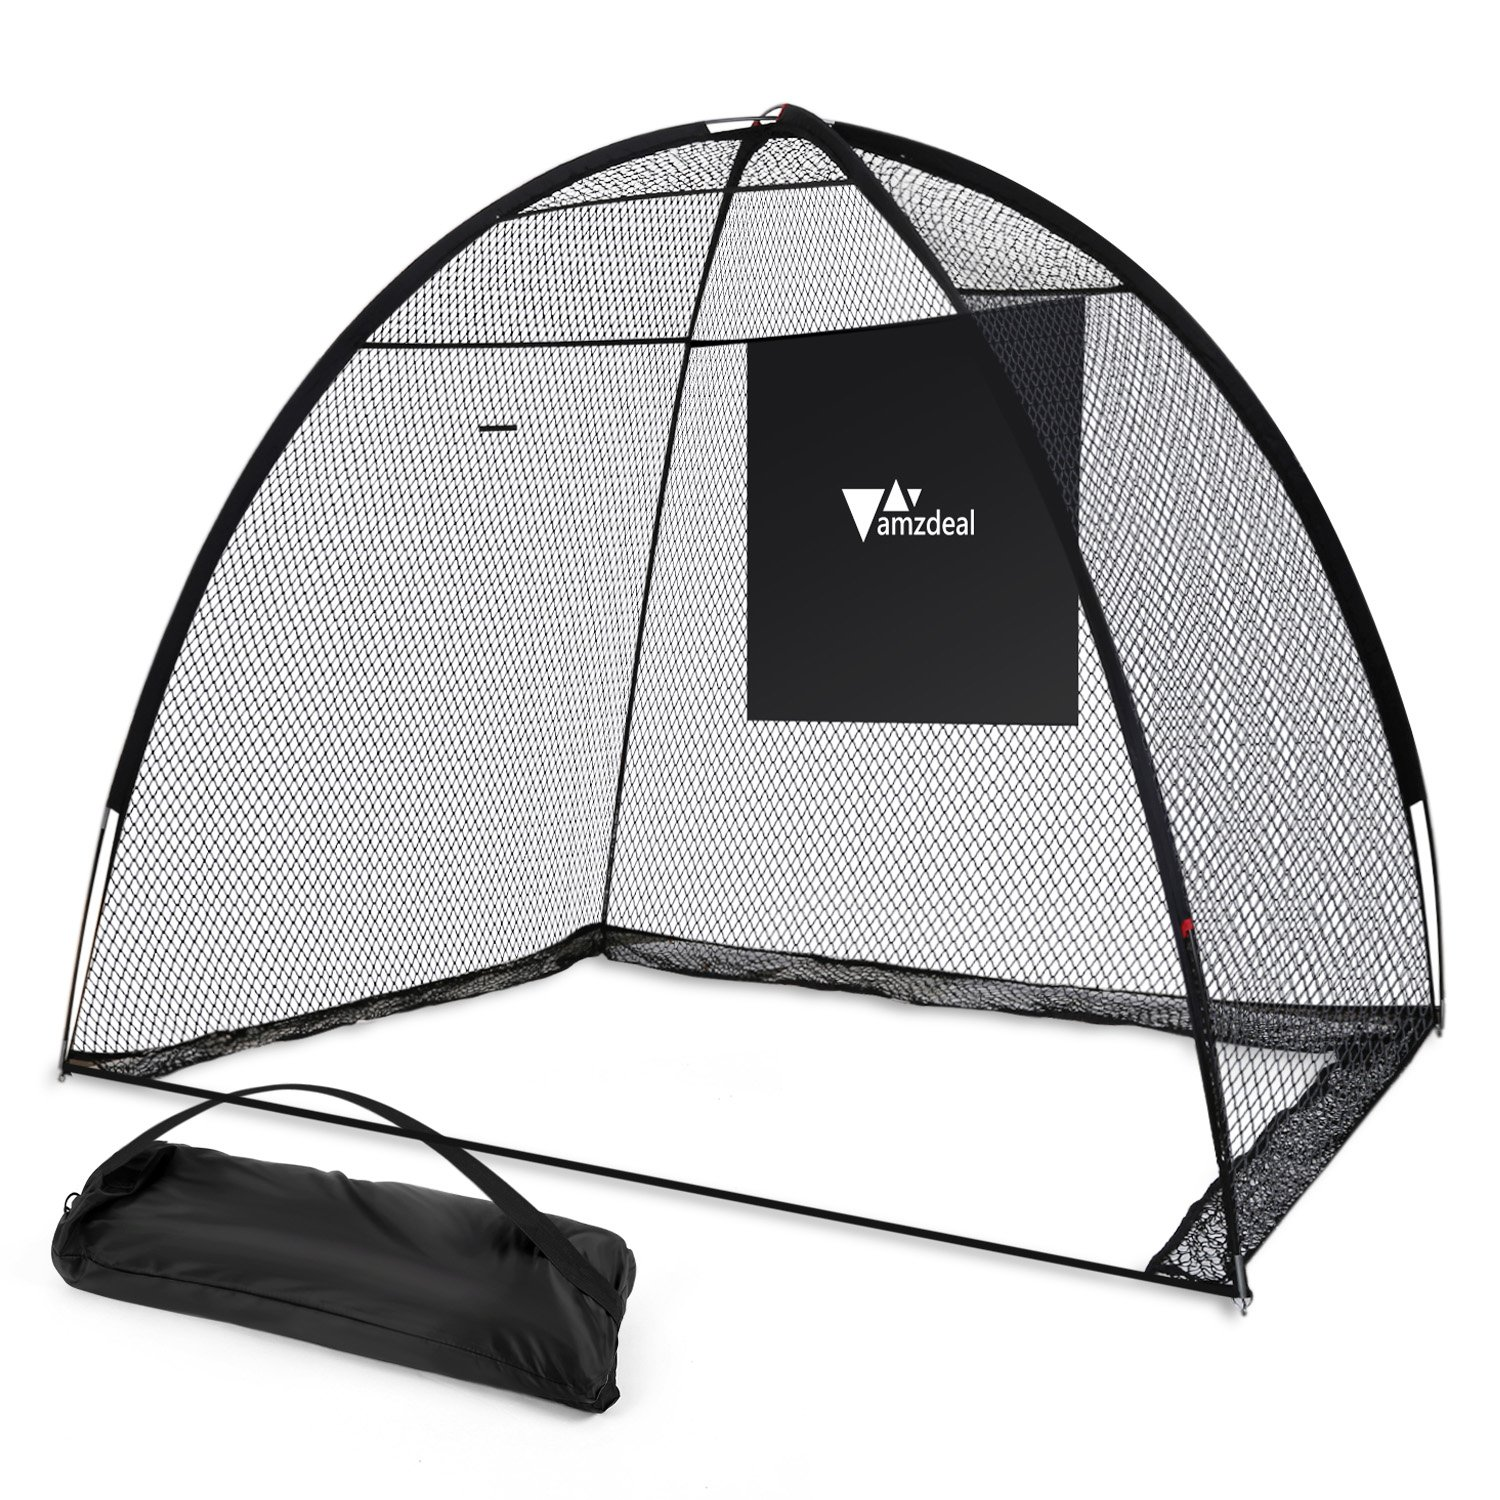 Amzdeal Golf Practice Net Golf Driving Hitting Net for Backyard Indoors Outdoors Golf Trainging Aids at Home with Target Sheet